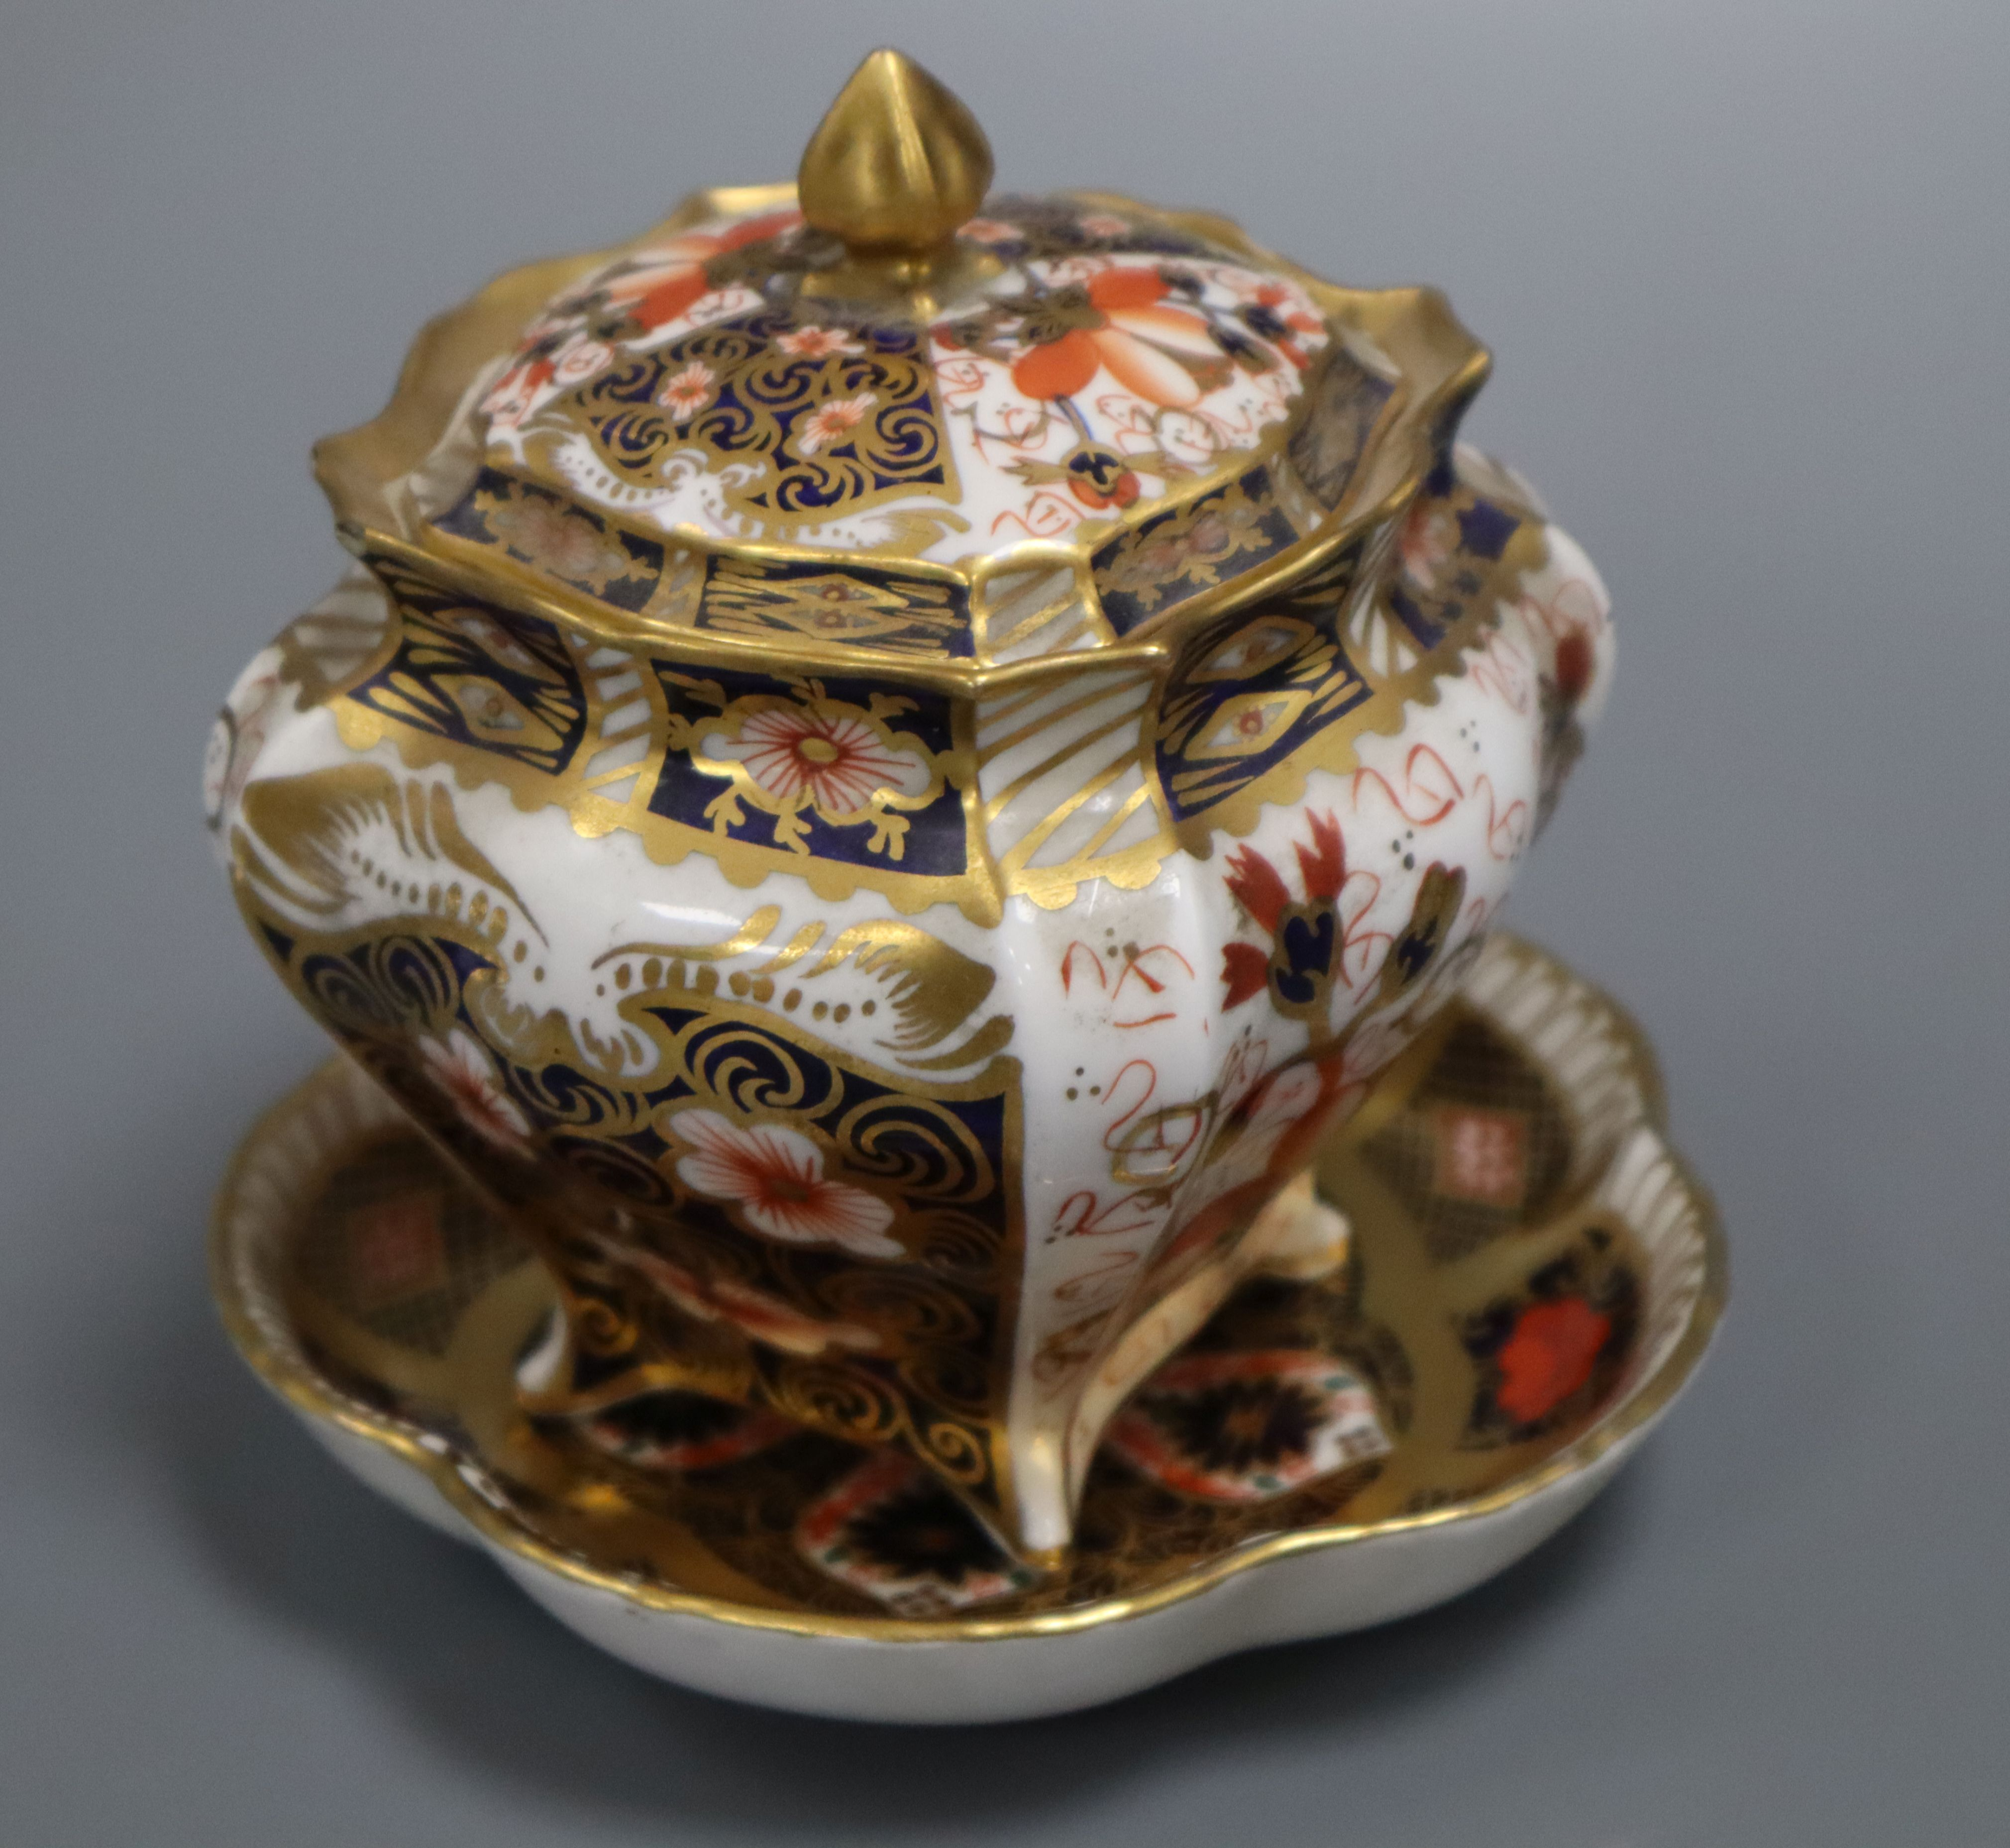 Lot 48 - A Royal Crown Derby casket and dish height 10cm